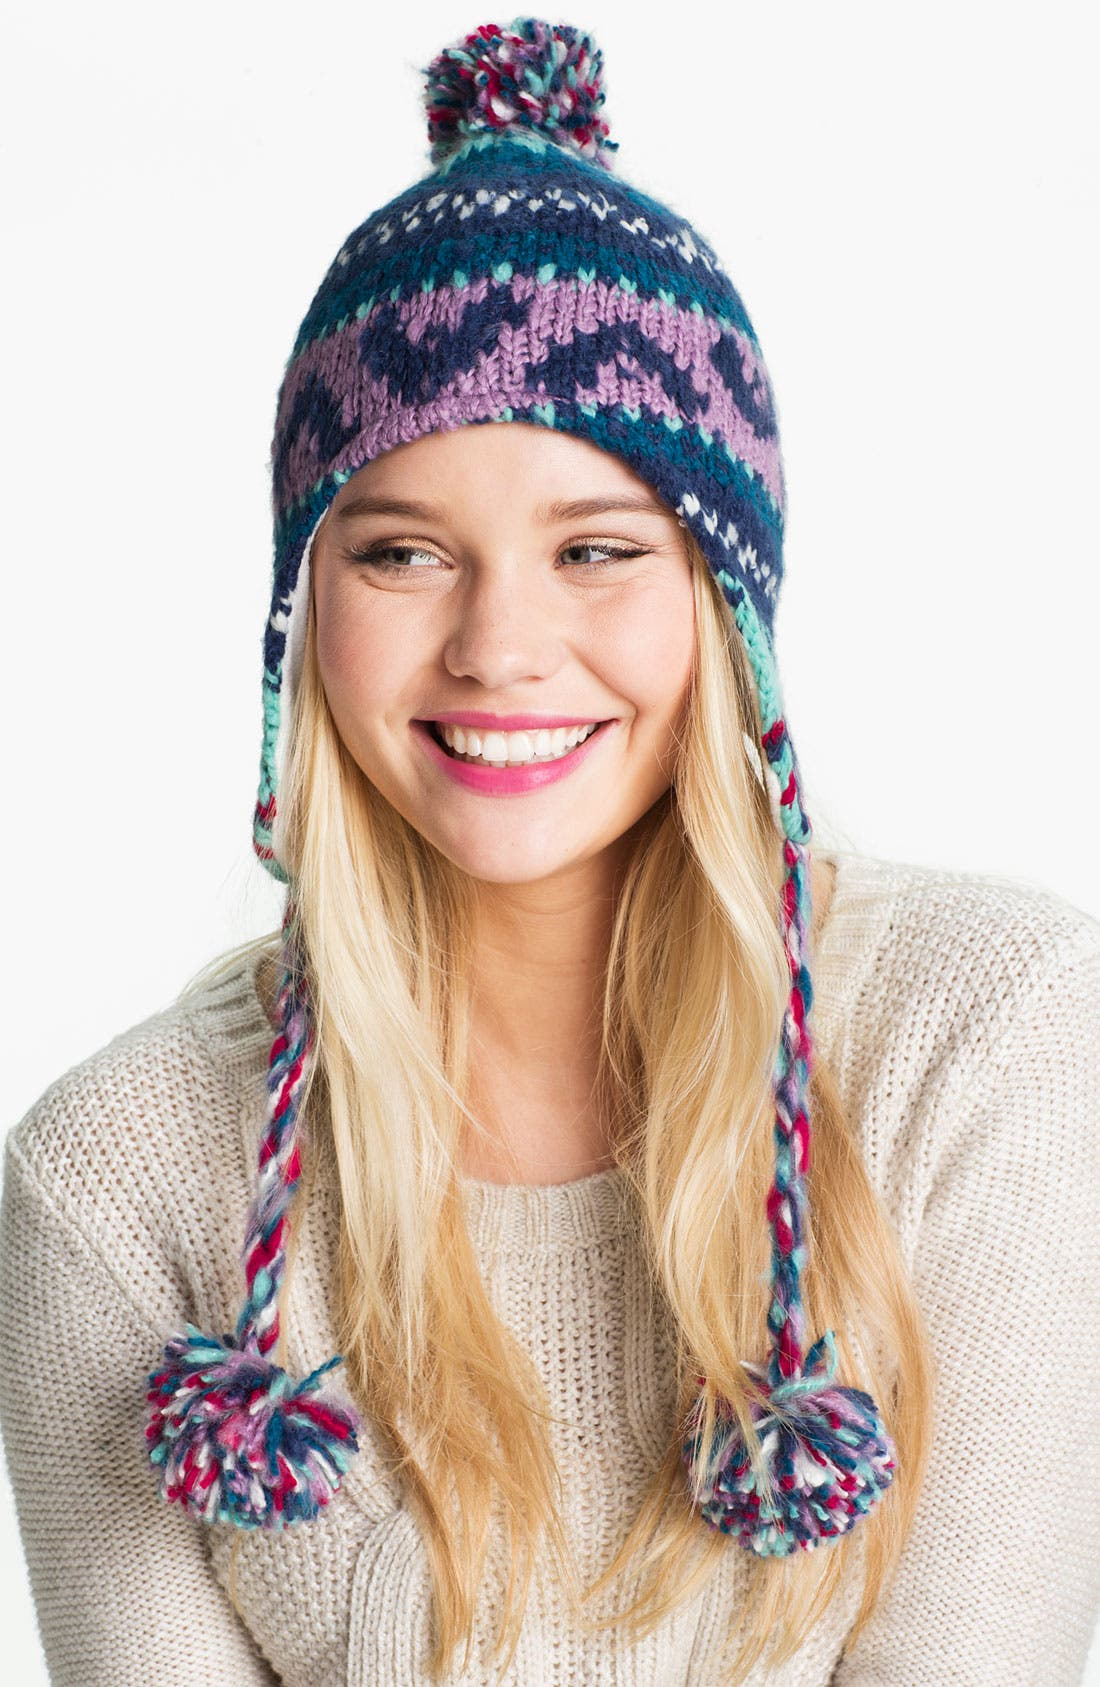 Alternate Image 1 Selected - BP. Fair Isle Chullo Hat